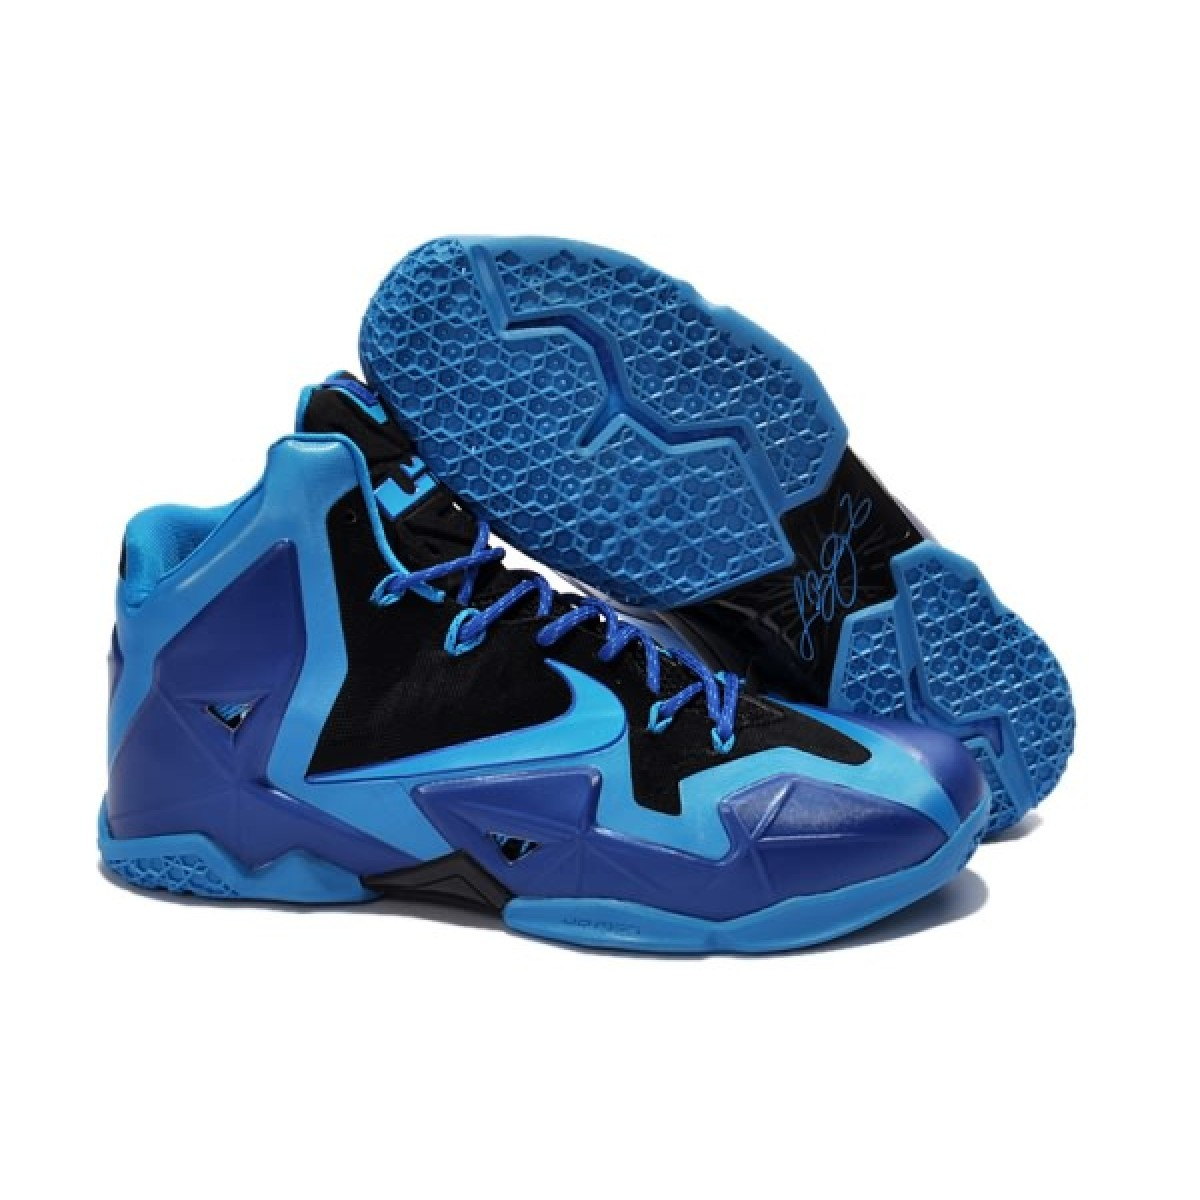 Nike Lebron 11 P.S Air Ma Royal Blue Purple Basketball Sneaker